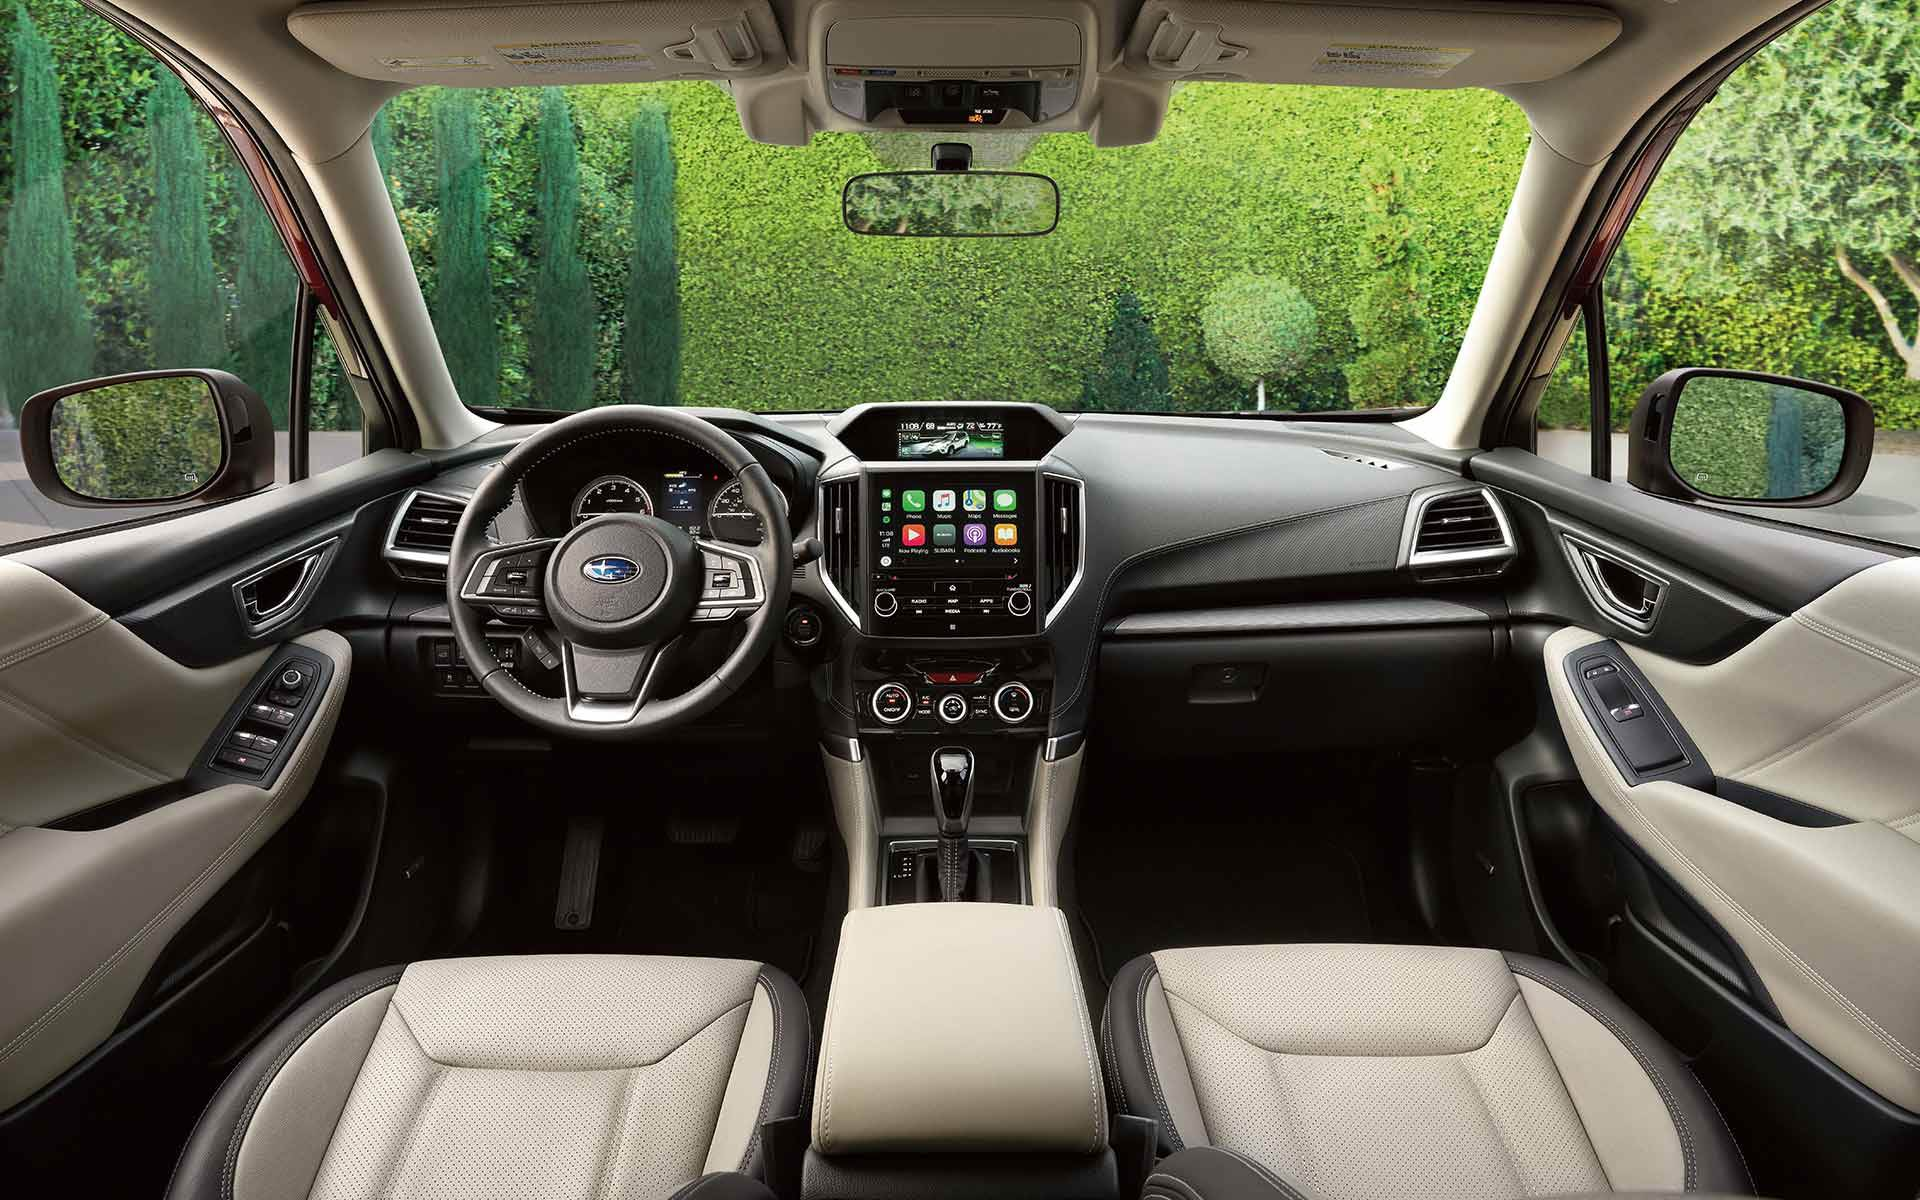 2020 Subaru Forester: Specs, Design, Price >> 2020 Subaru Forester Features Subaru